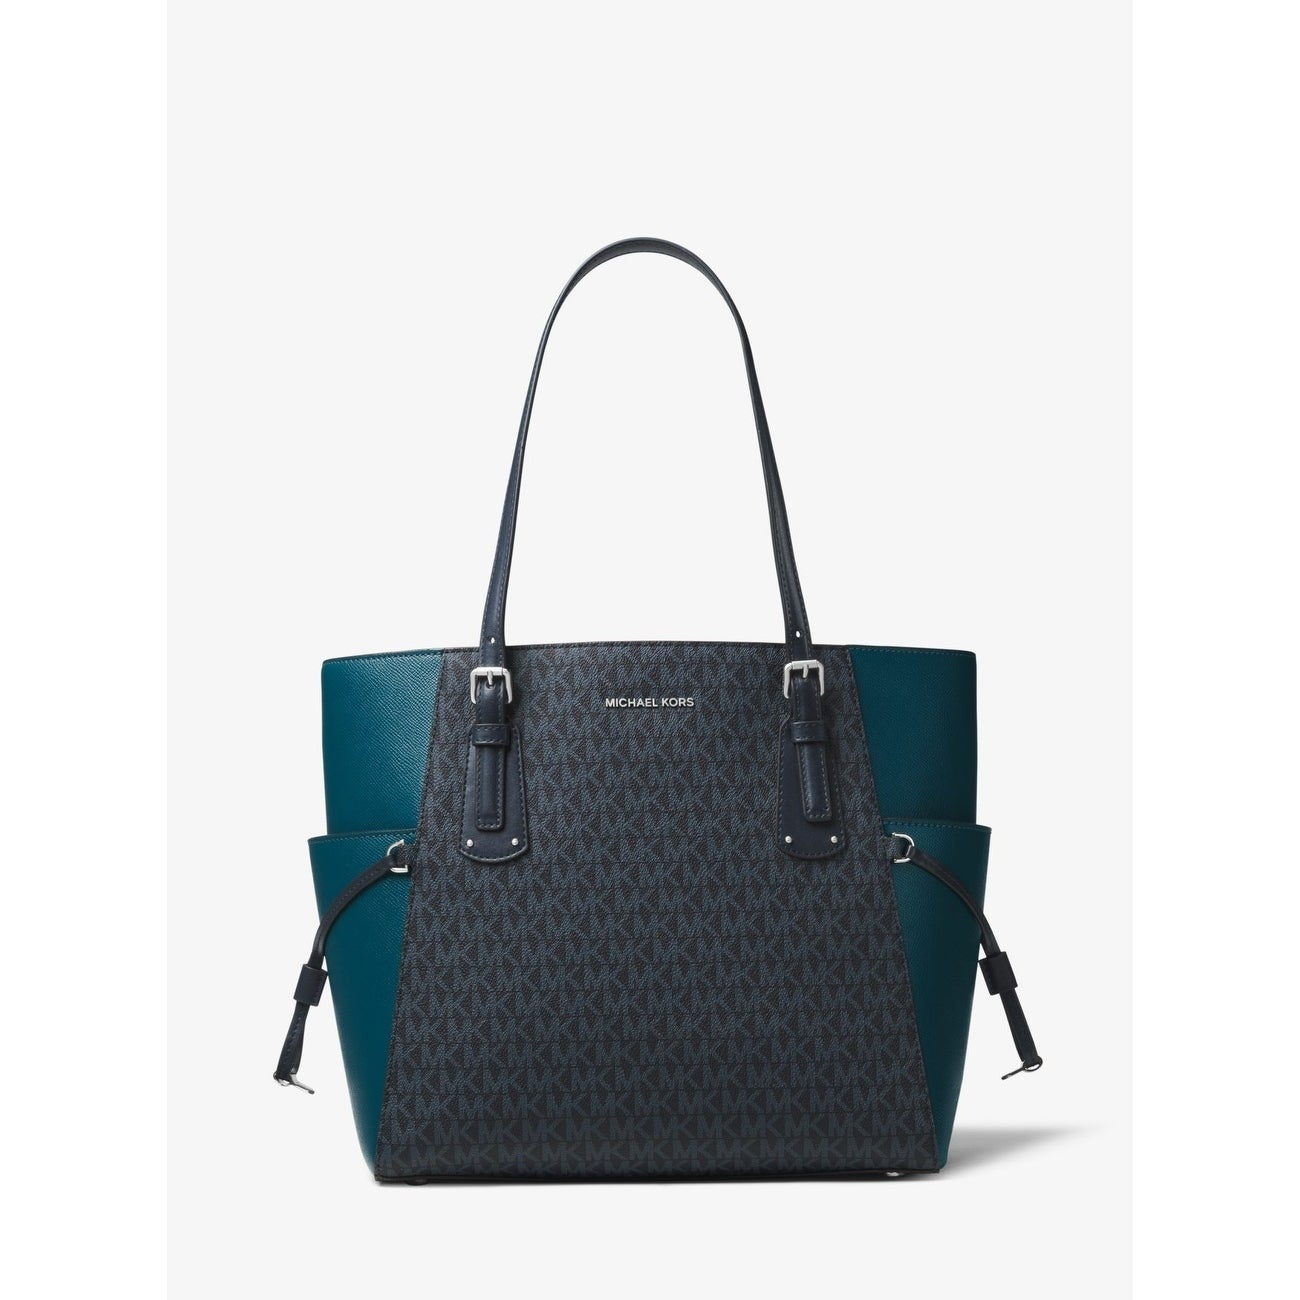 2ae16ffcad Buy Michael Kors Tote Bags Online at Overstock